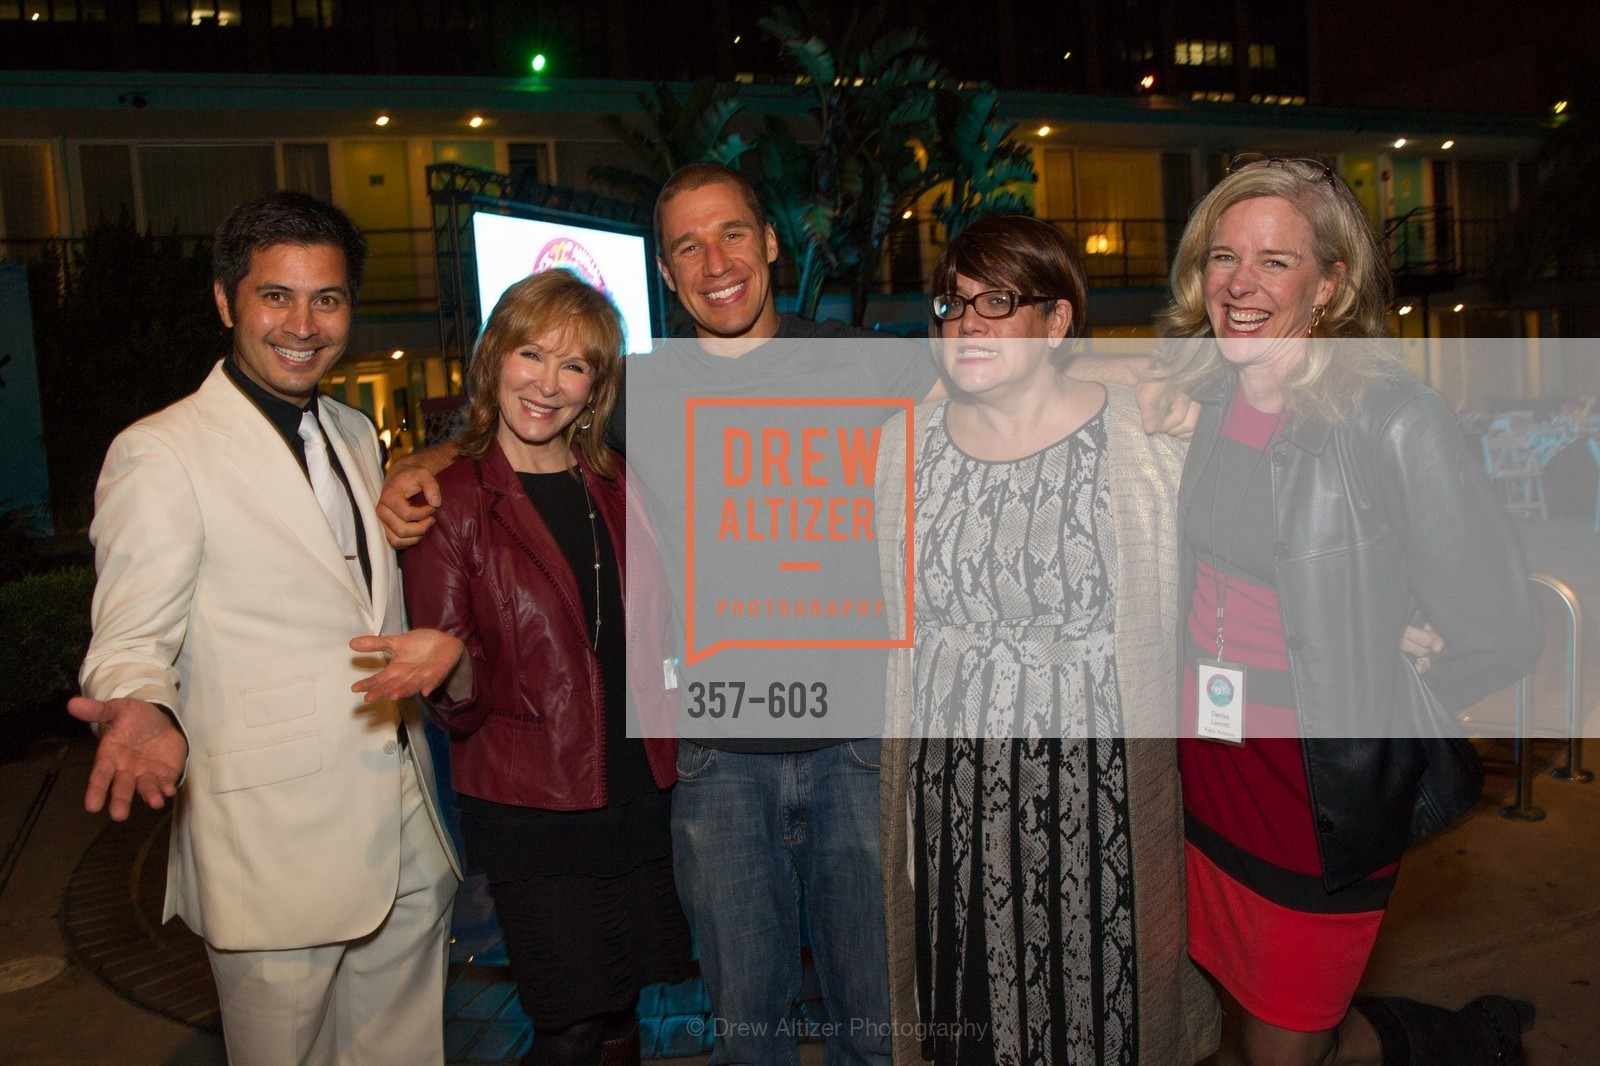 Rafael Musni, Cheryl Jennings, AJ Kirsch, Denise Lamott, 22nd Annual TNDC CELEBRITY POOL TOSS, US, October 9th, 2014,Drew Altizer, Drew Altizer Photography, full-service agency, private events, San Francisco photographer, photographer california